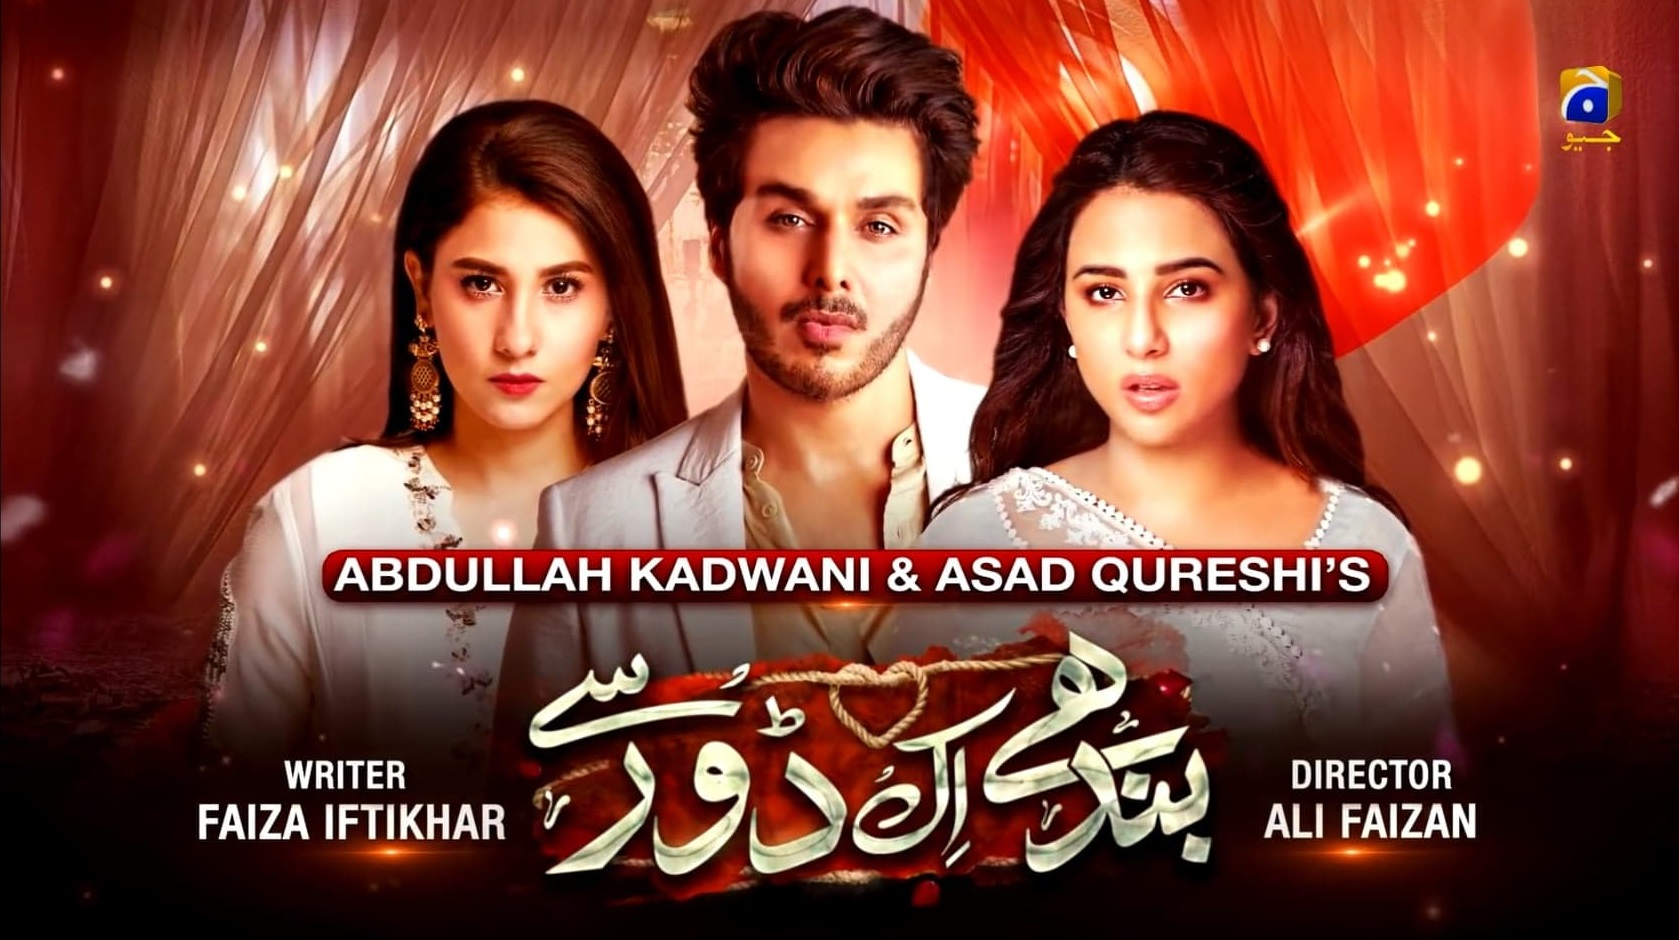 Messages Given In Pakistani Dramas This Season